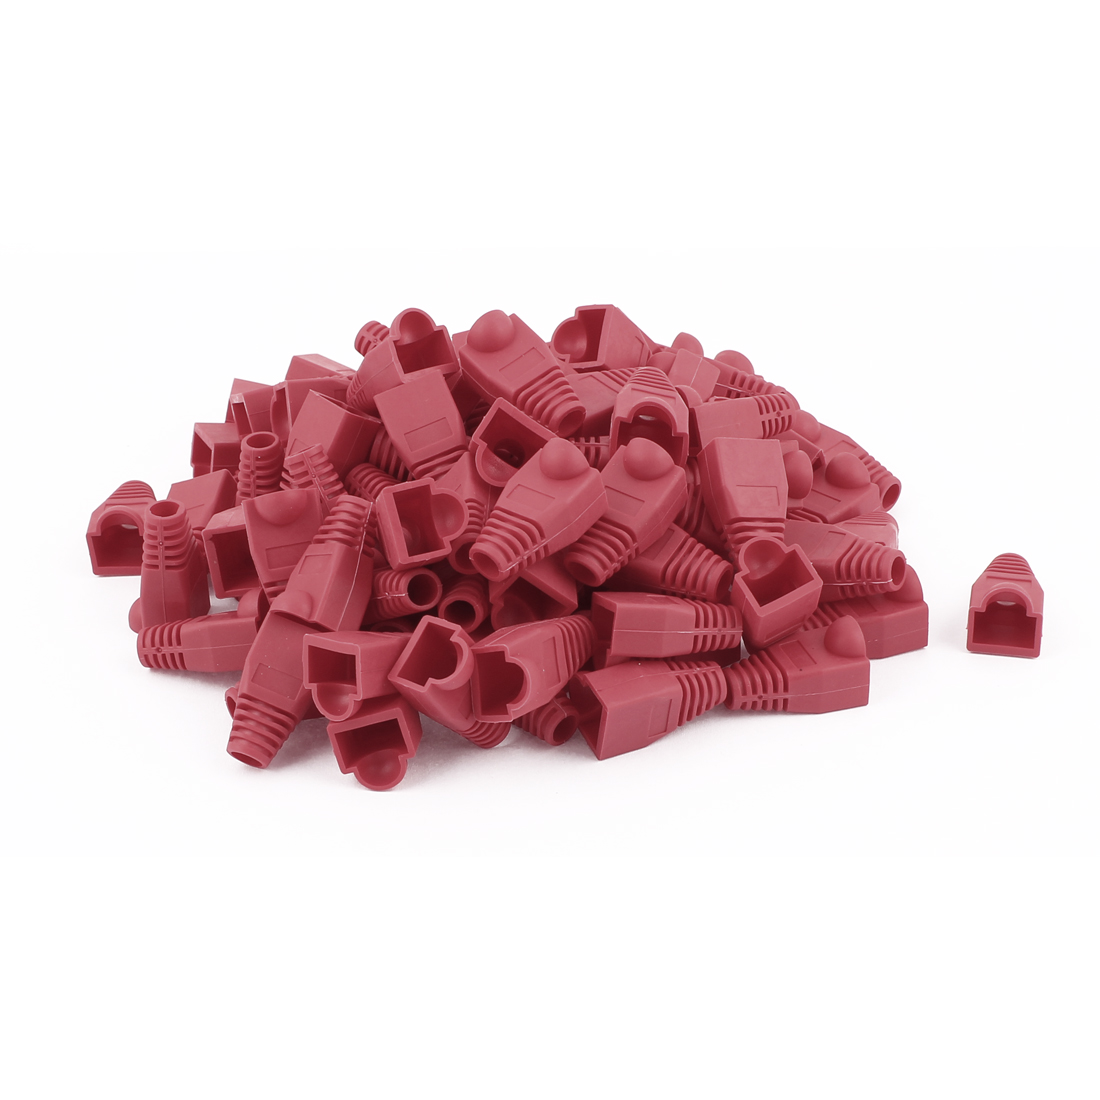 100pcs Red Plastic RJ45 8P8C Cat5 Network Cable Connector Boot Cap Cover Protector